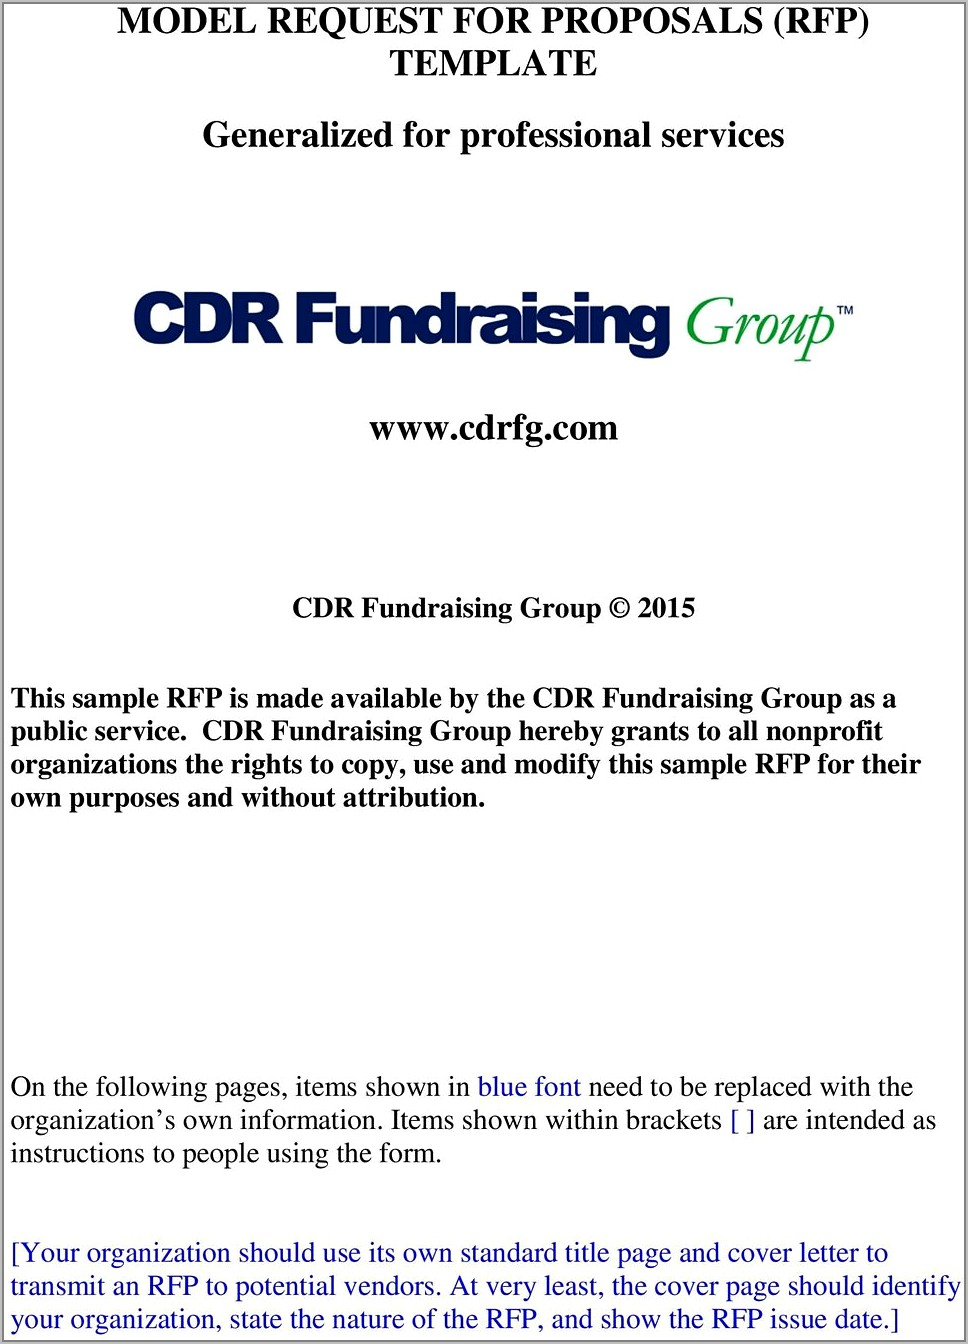 Request For Proposals Rfp Template